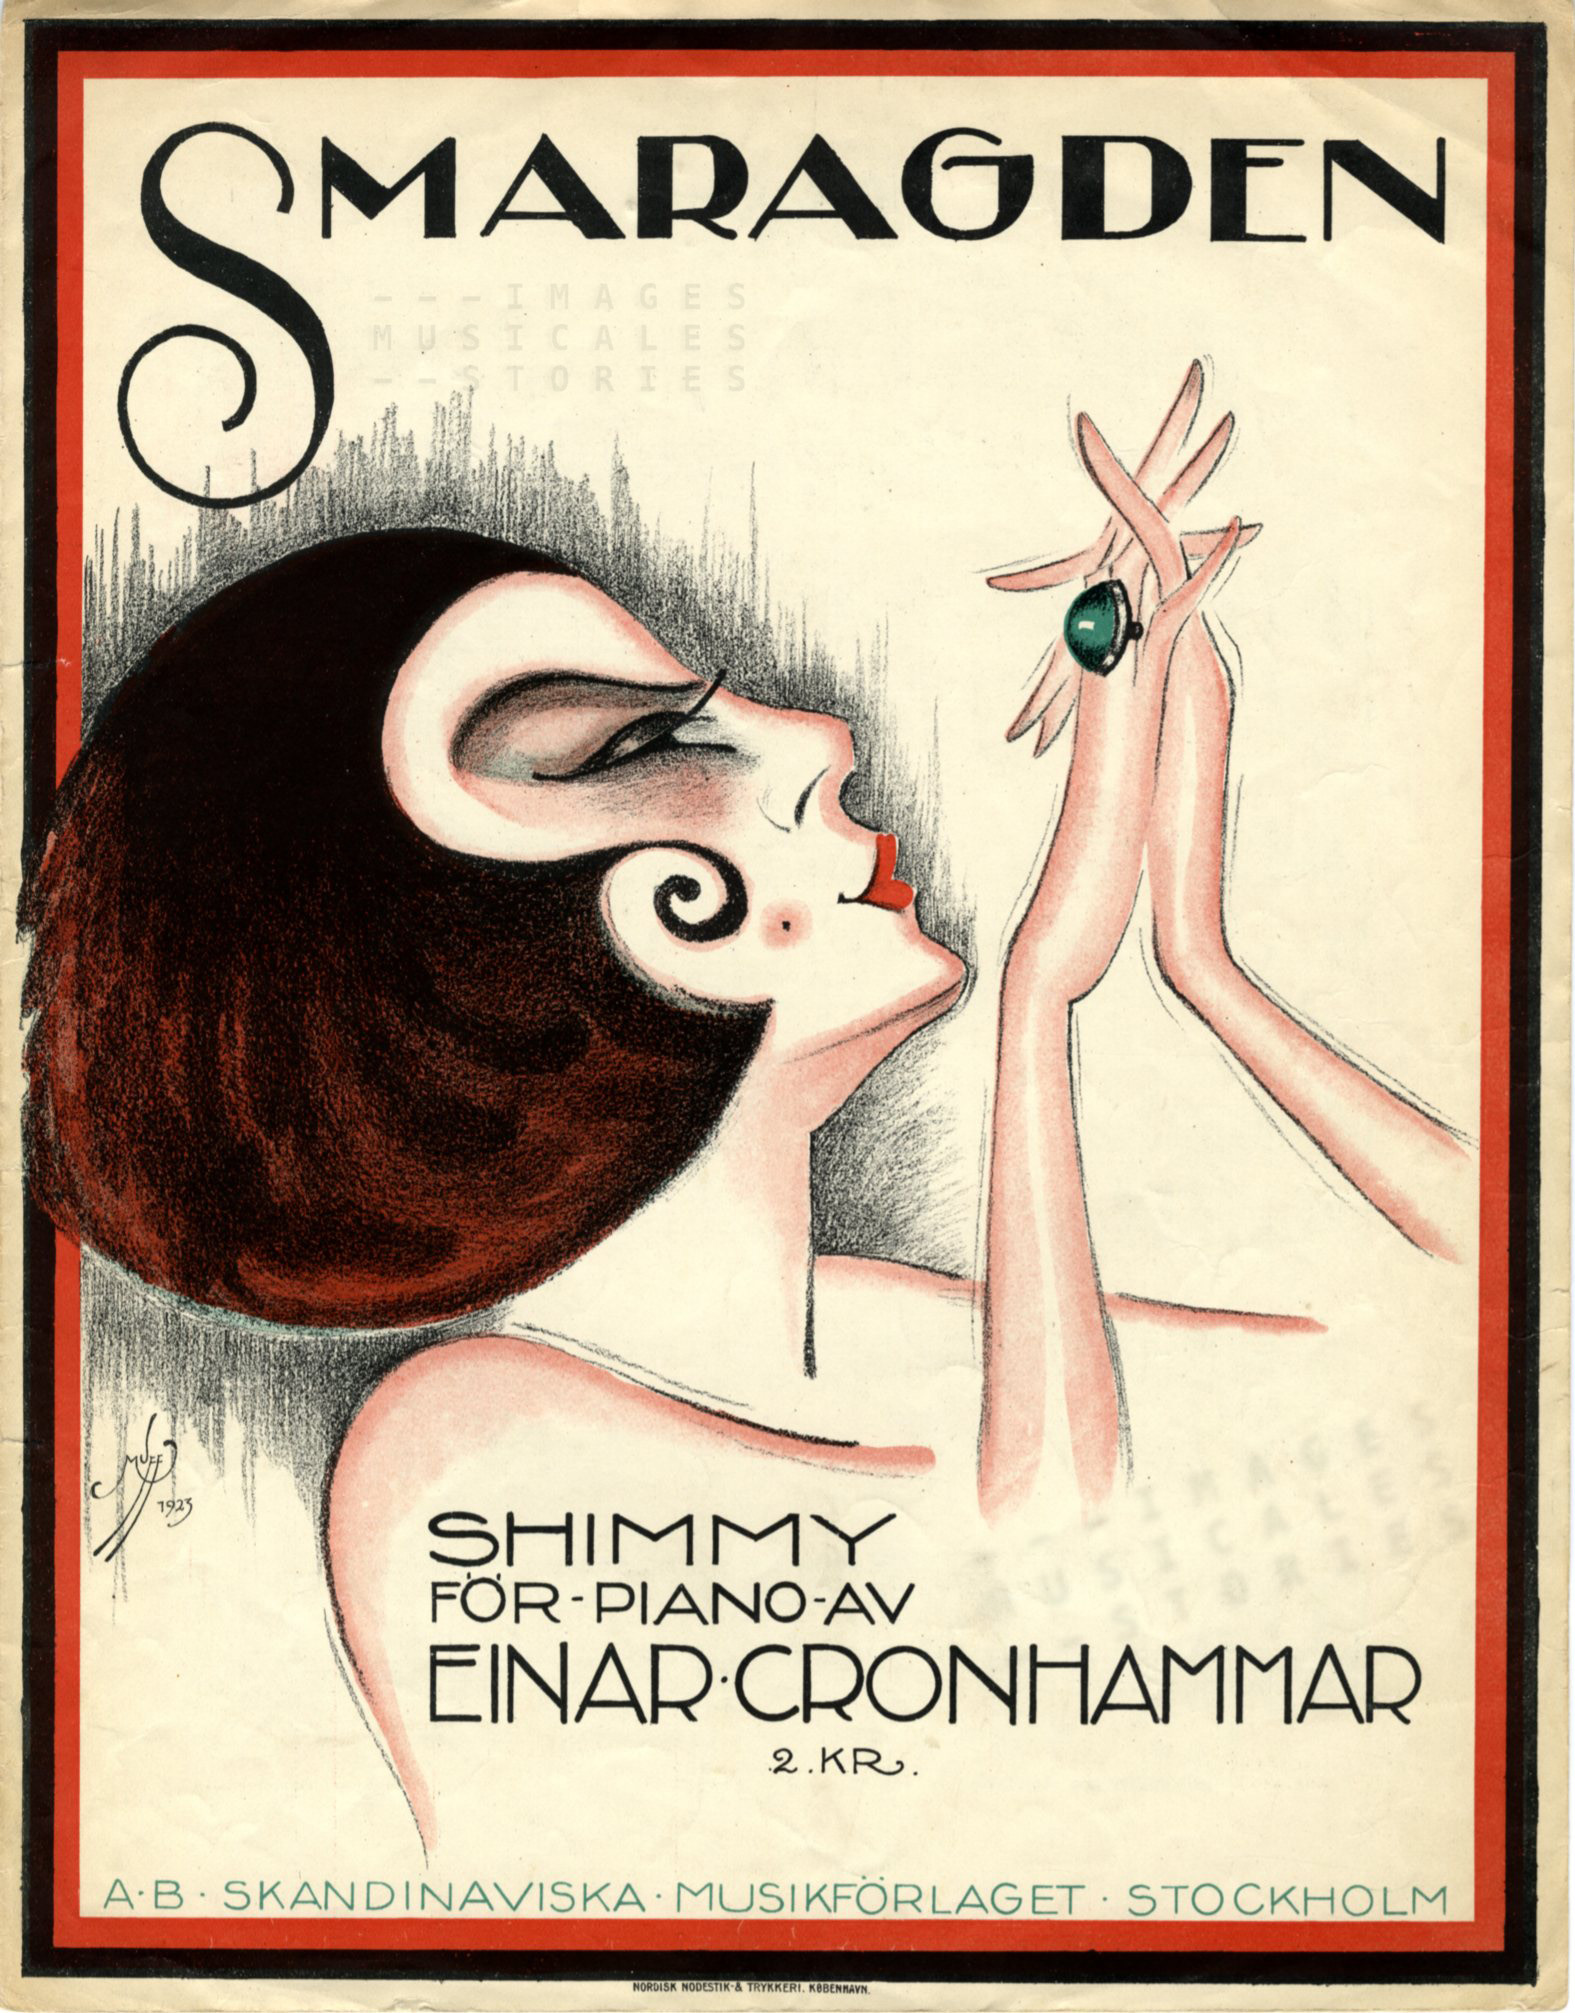 'Smaragden', music by Einar Cronhammar (1923) - click image to enlarge